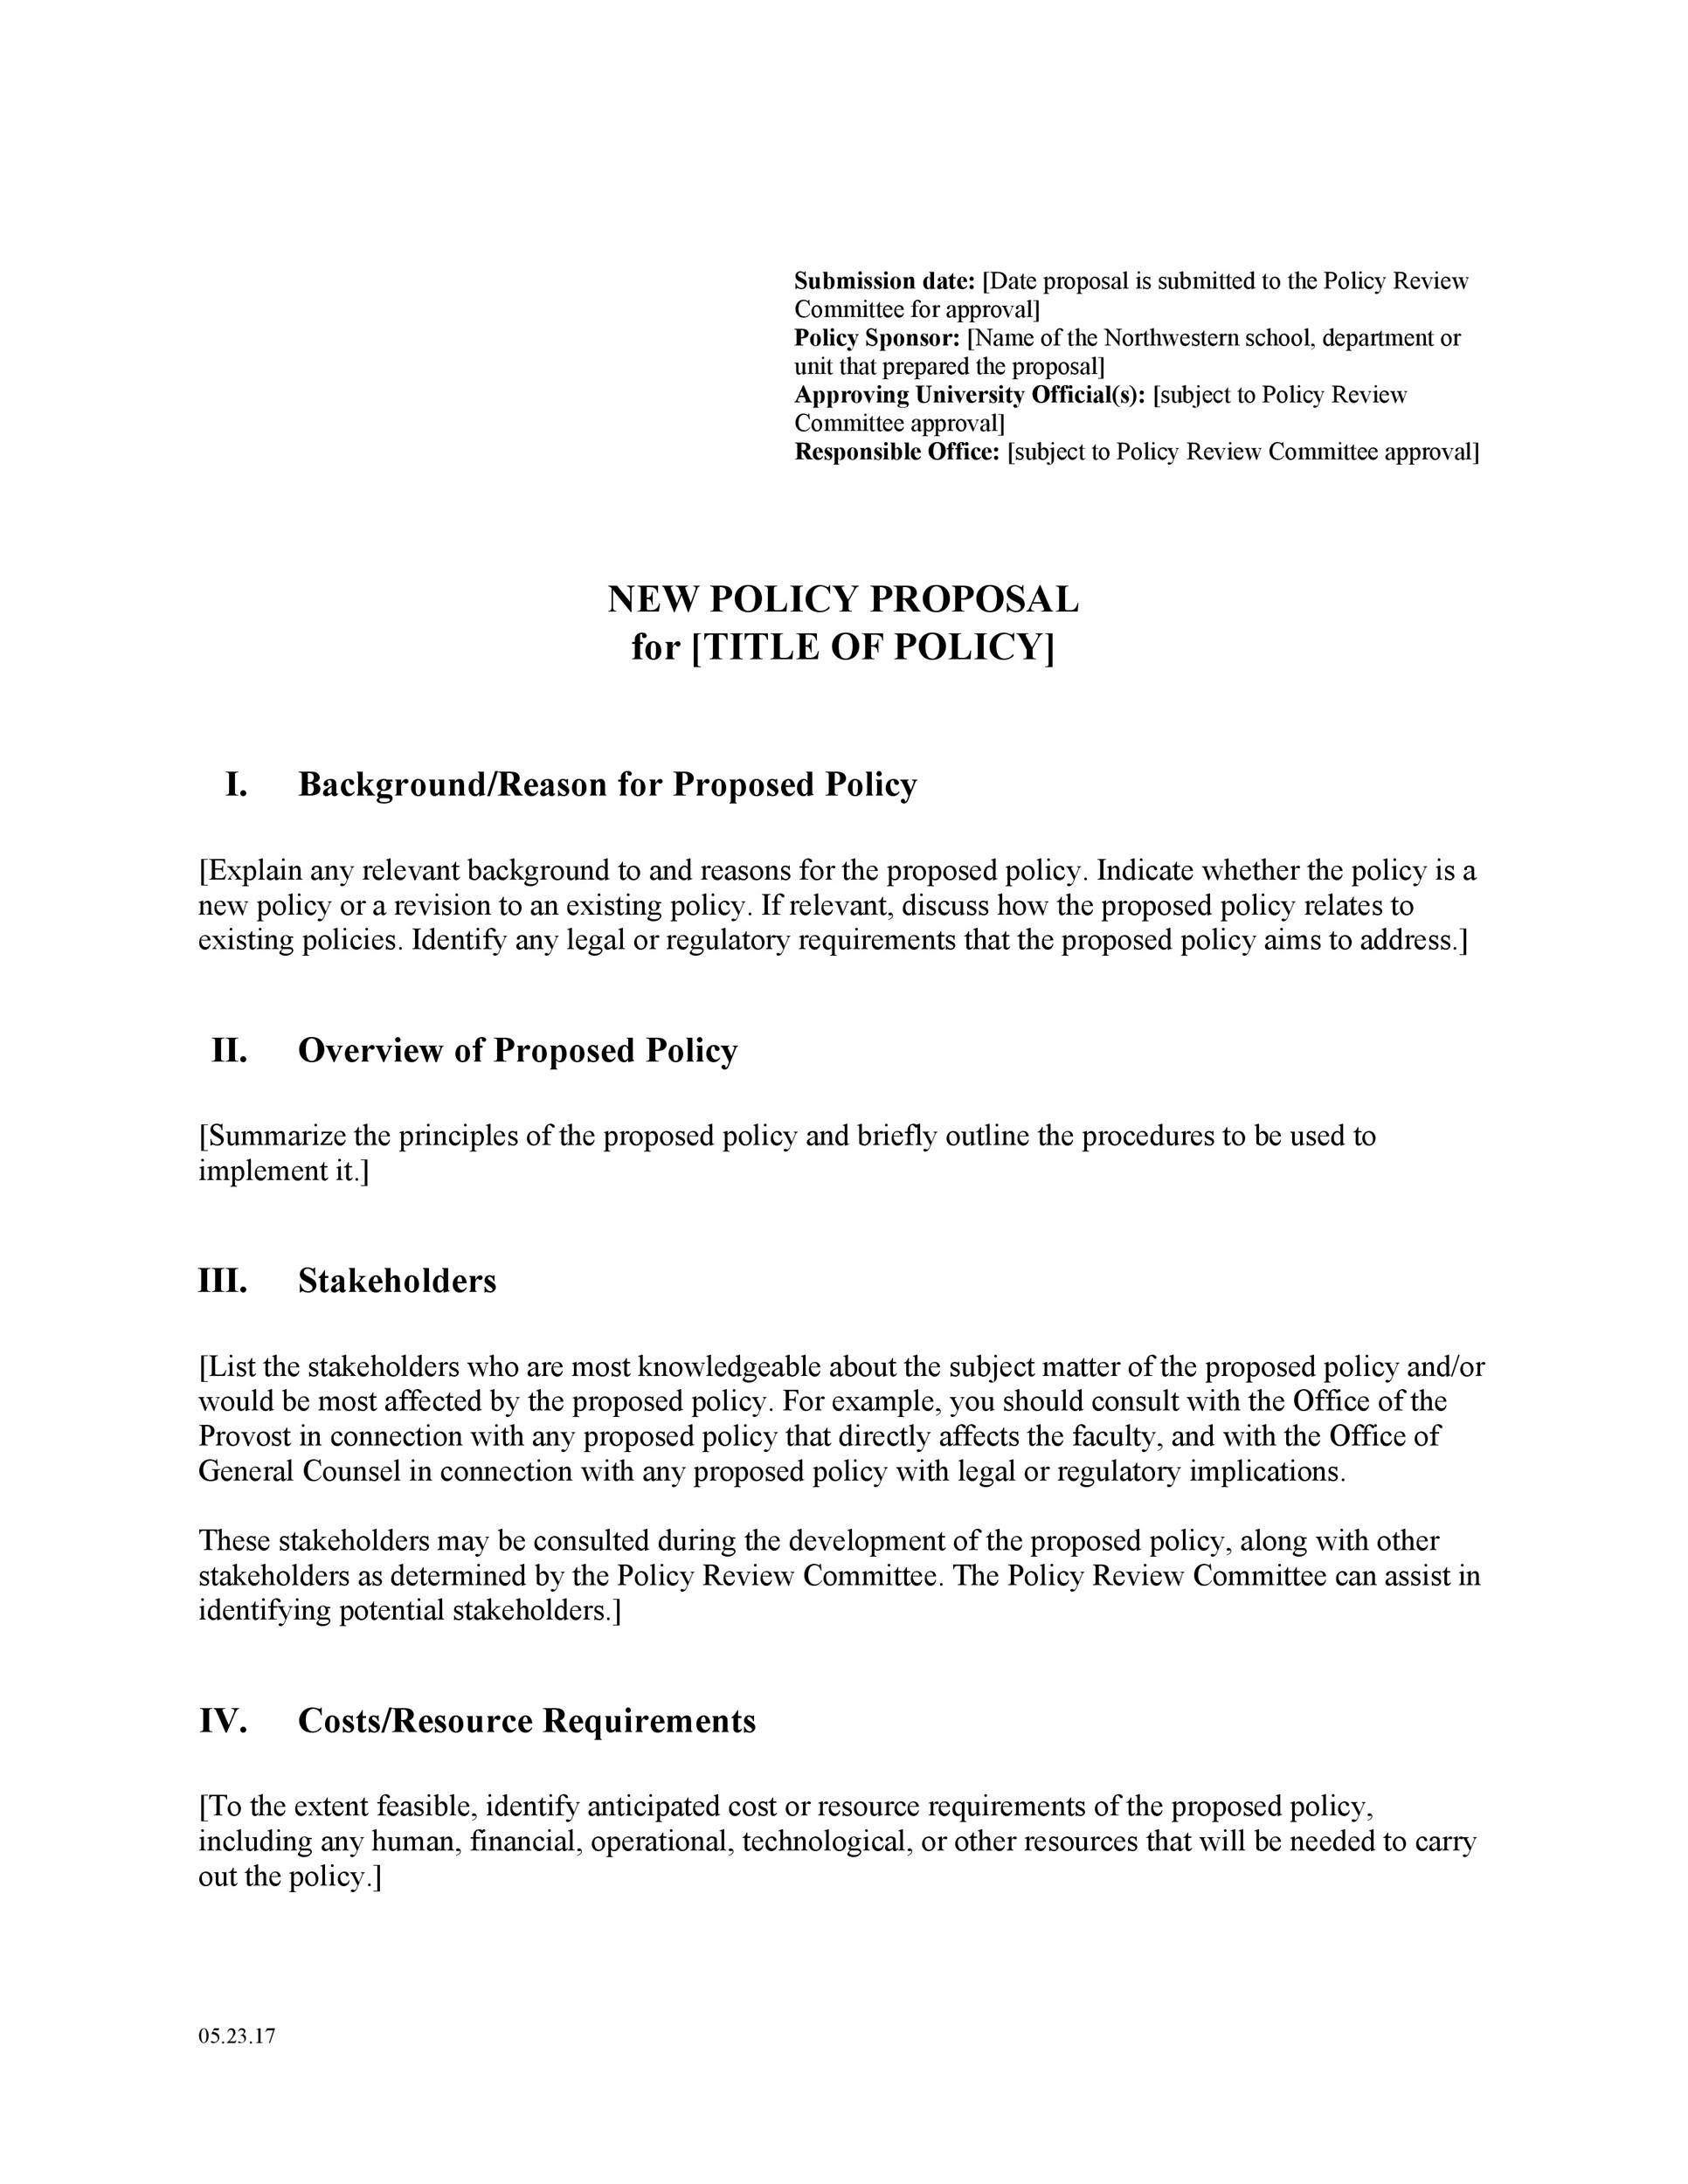 Free policy proposal template 01